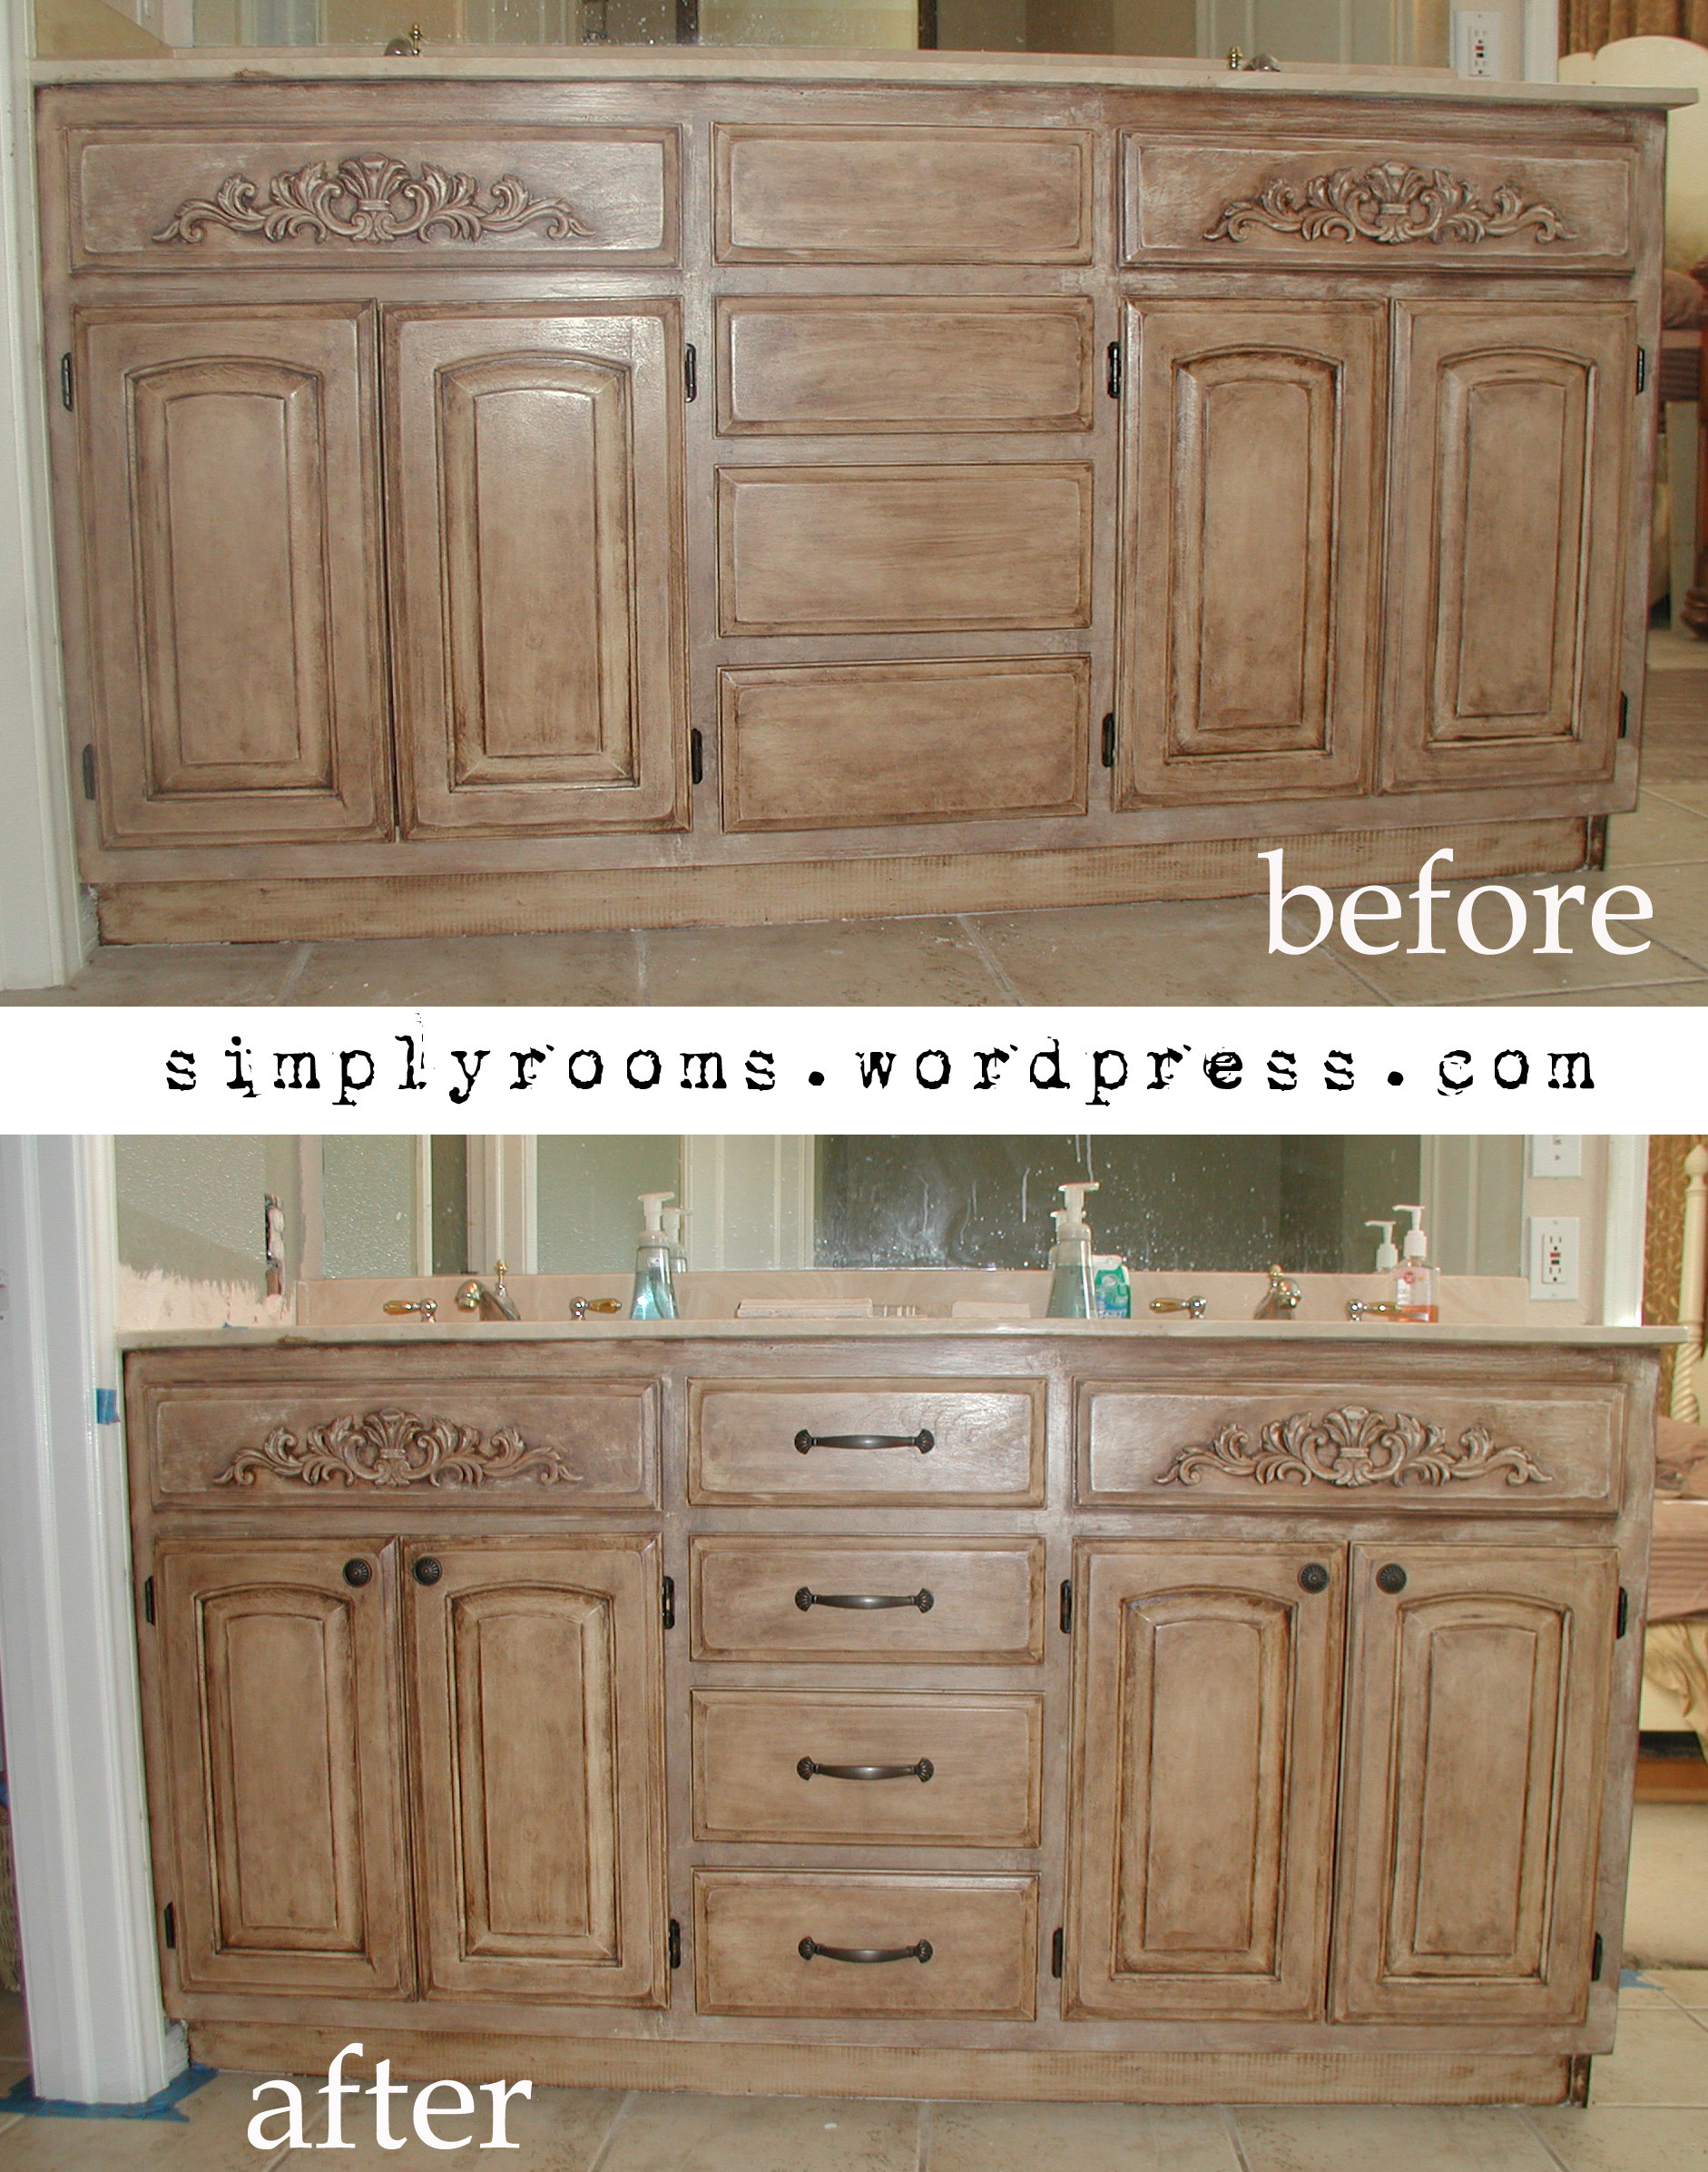 Cabinet Door World Unique Project Transforming Builder Grade Cabinets to Old World